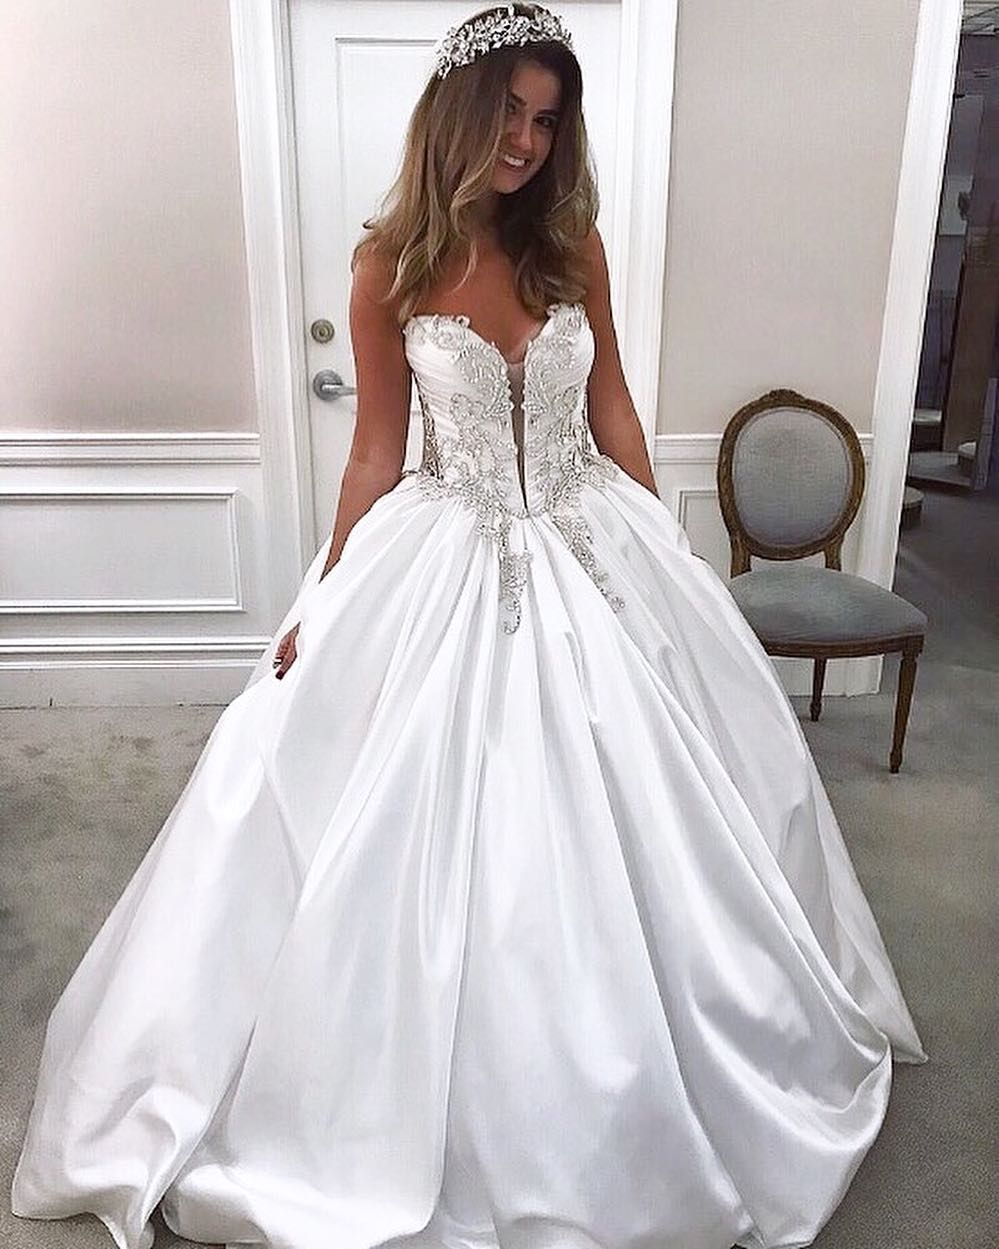 Strapless Silk Ball Gown Wedding Dress By Pnina Tornai Photo Jacmichels Regram Pnina Tornai Wedding Dress Pnina Tornai Ball Gown Ball Gown Wedding Dress